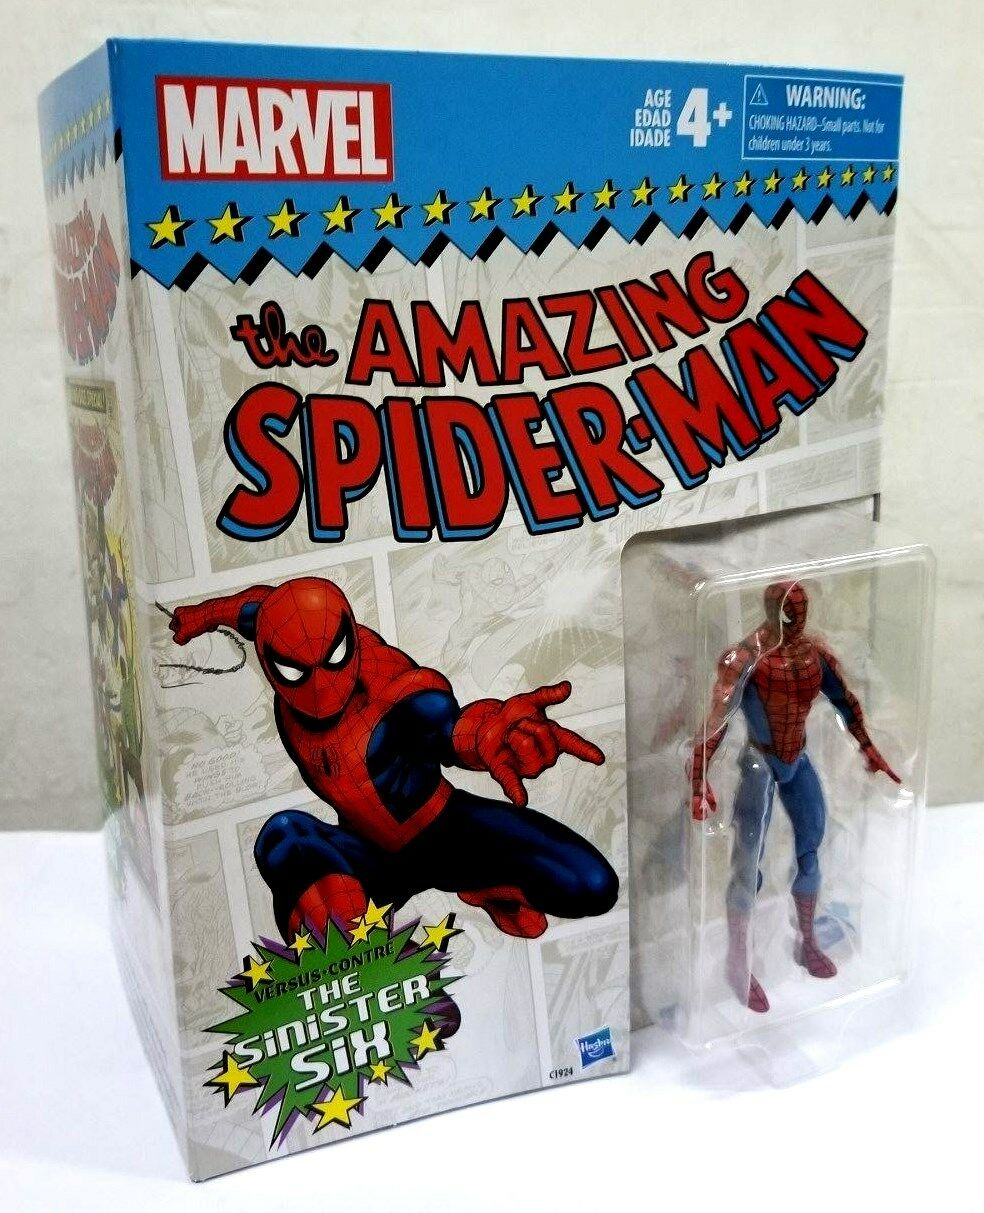 MARVEL LEGENDS 3.75 EXCLUSIVE SPIDER-MAN SPIDER-MAN SPIDER-MAN vs THE SINISTER SIX BOX SET f73ef4